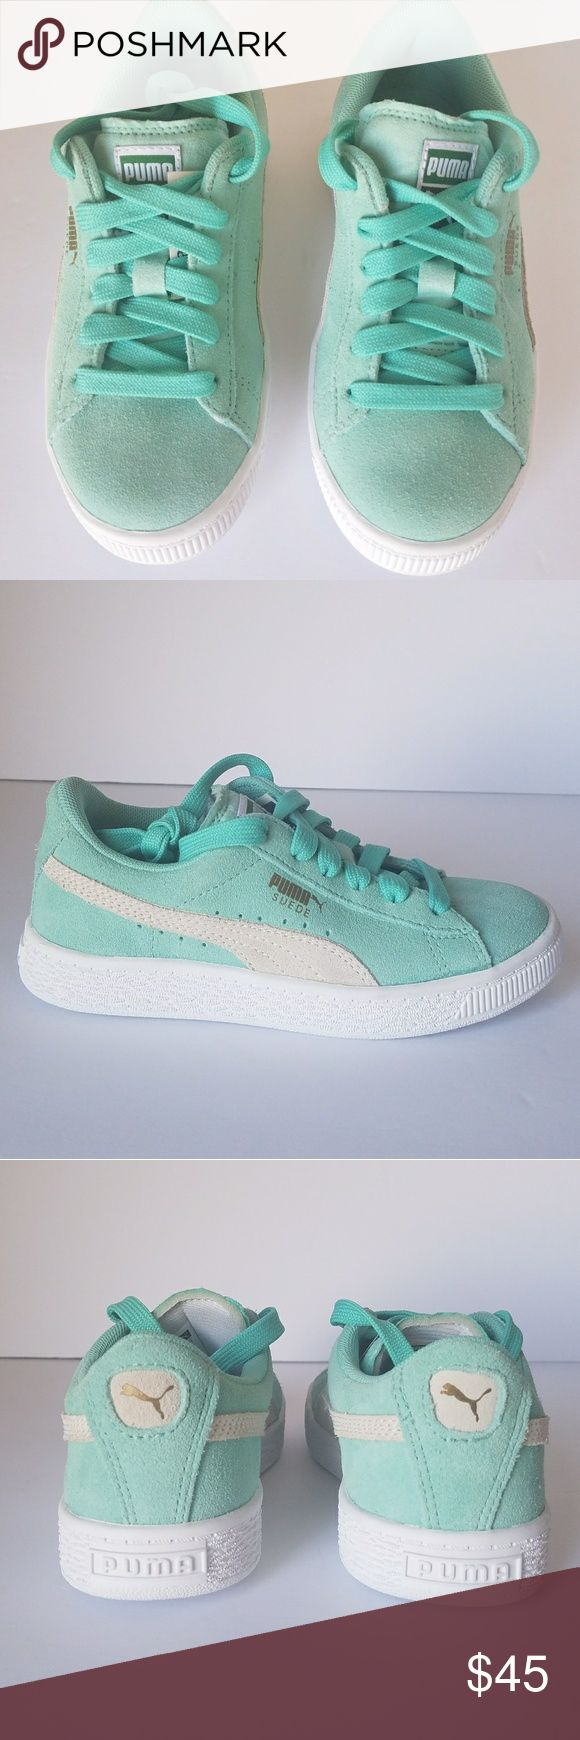 PUMA junior Girl Athletic Shoes Suede 1C 36075788 PUMA Junior Girl Athletic Shoes Suede Green Mint Grade School 36075788 1C 19cm   PUMA Junior Girls' SUEDE JR Shoes  Manufacturer #:36075788  Color:Green Mint  Size: 1C US (19 cm)  MSRP: $55.00  Suede upper with perforated detailing atmidfoot. Laceclosure for a snugfit. RemovableKinder-Fit® sockliner and cushioned midsole for optimum comfort. Non-marking rubber outsole for added grip. PUMA Formstrip at medial and lateral sides…